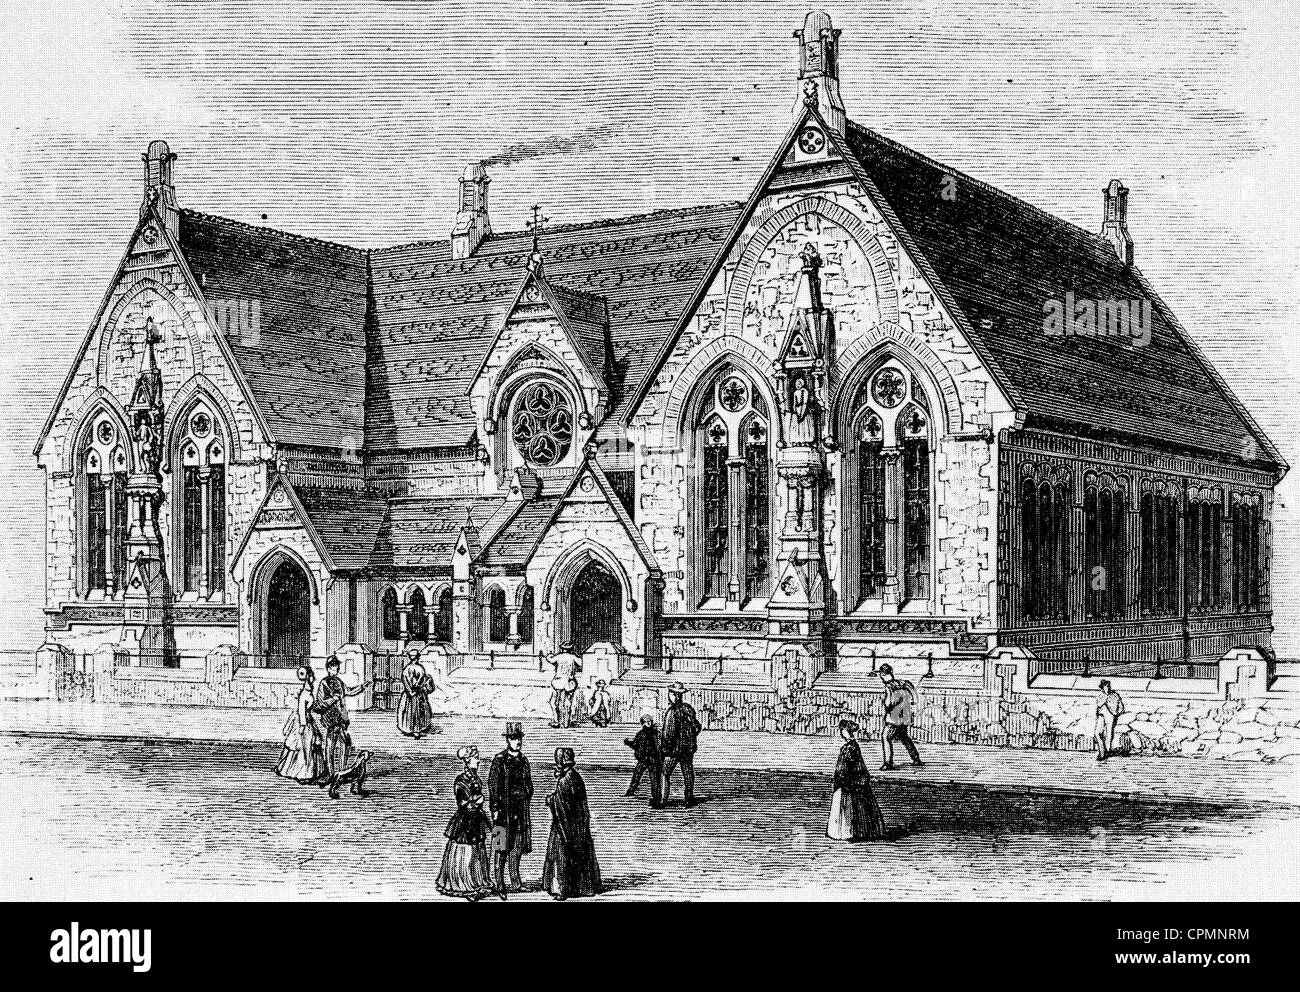 ST MARY'S PARISH SCHOOL, LEICESTER, 1869 - Stock Image